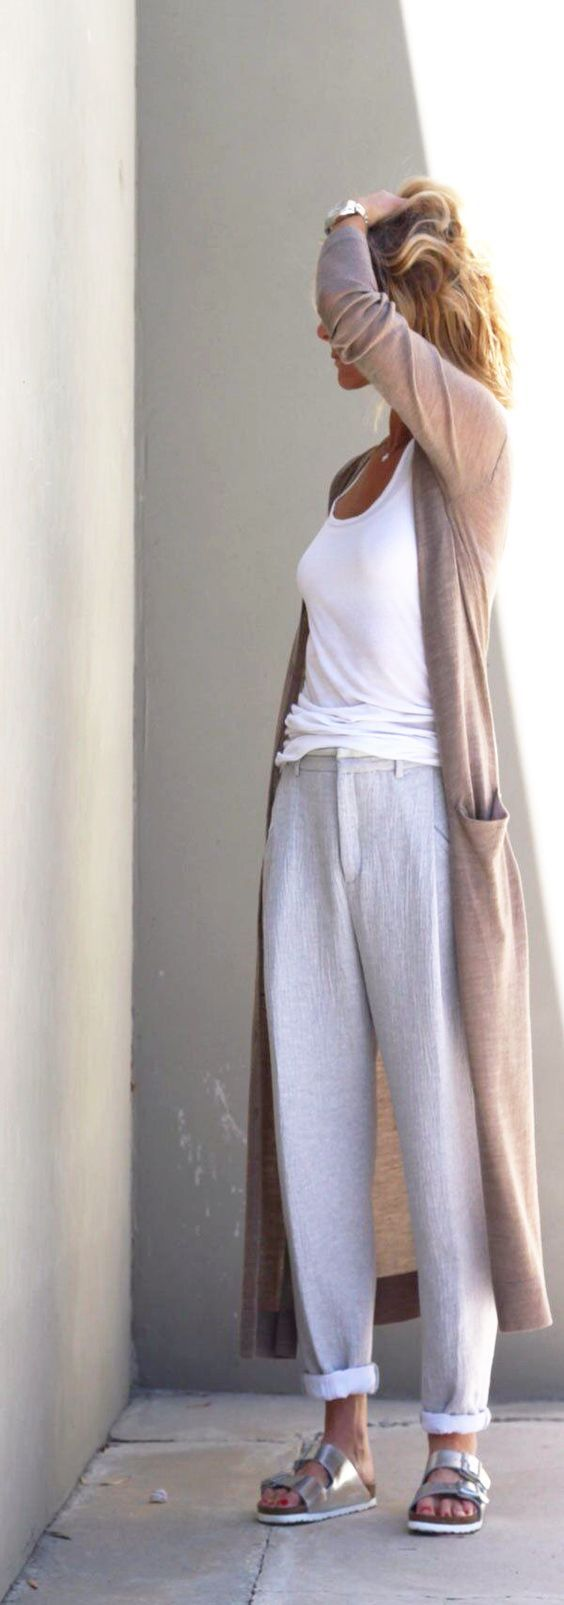 Style Me Chic gray pants, white top @roressclothes closet ideas #women fashion outfit #clothing style apparel